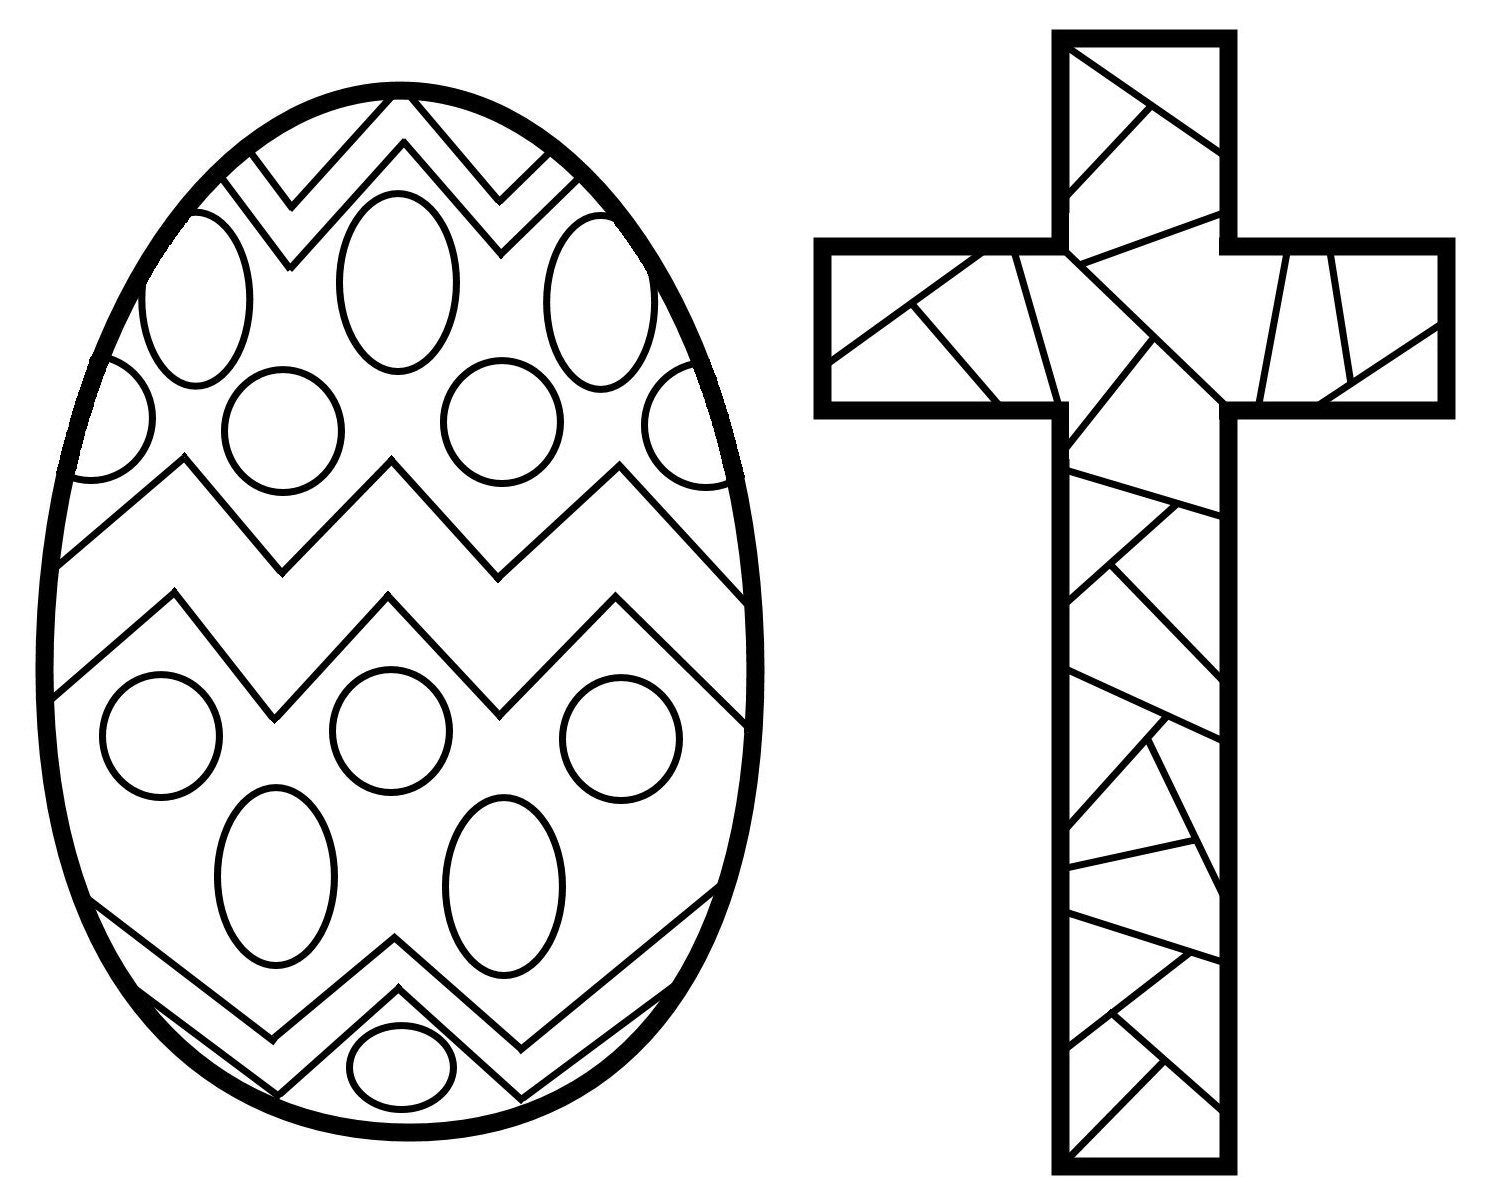 Easter Cross Coloring Pages Printable for Fancy Draw Print to Print Of Delighted Bunny Print Out Coloring Pages Easter for Kids Crazy Printable